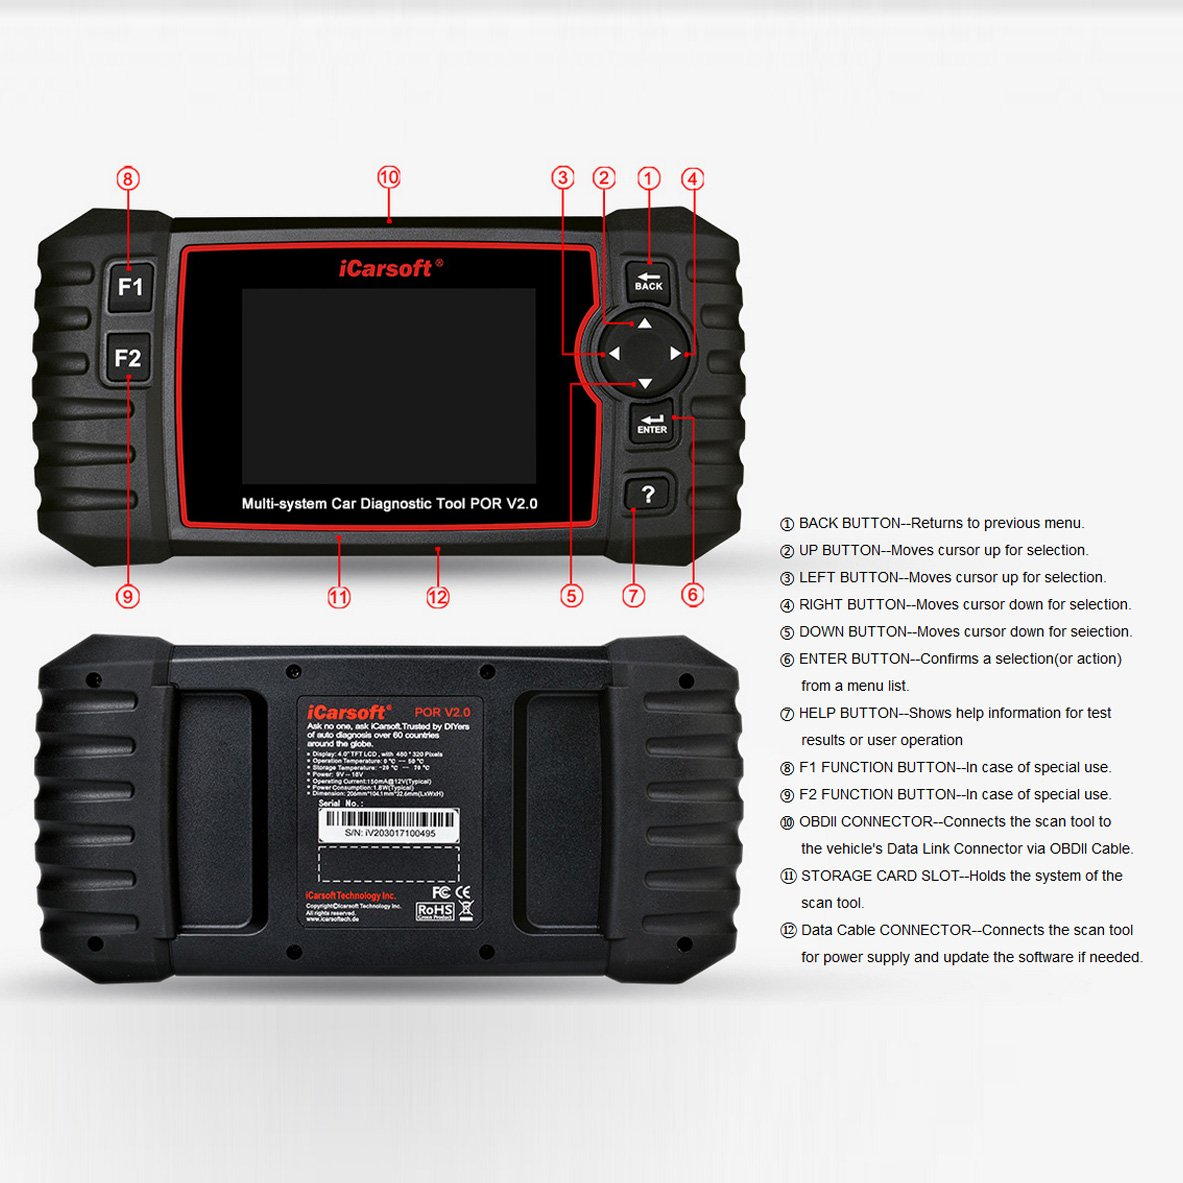 iCarsoft Auto Diagnostic Scanner POR V2.0 for Porsche with ABS Scan,Oil Service Reset ect by iCarsoft (Image #7)